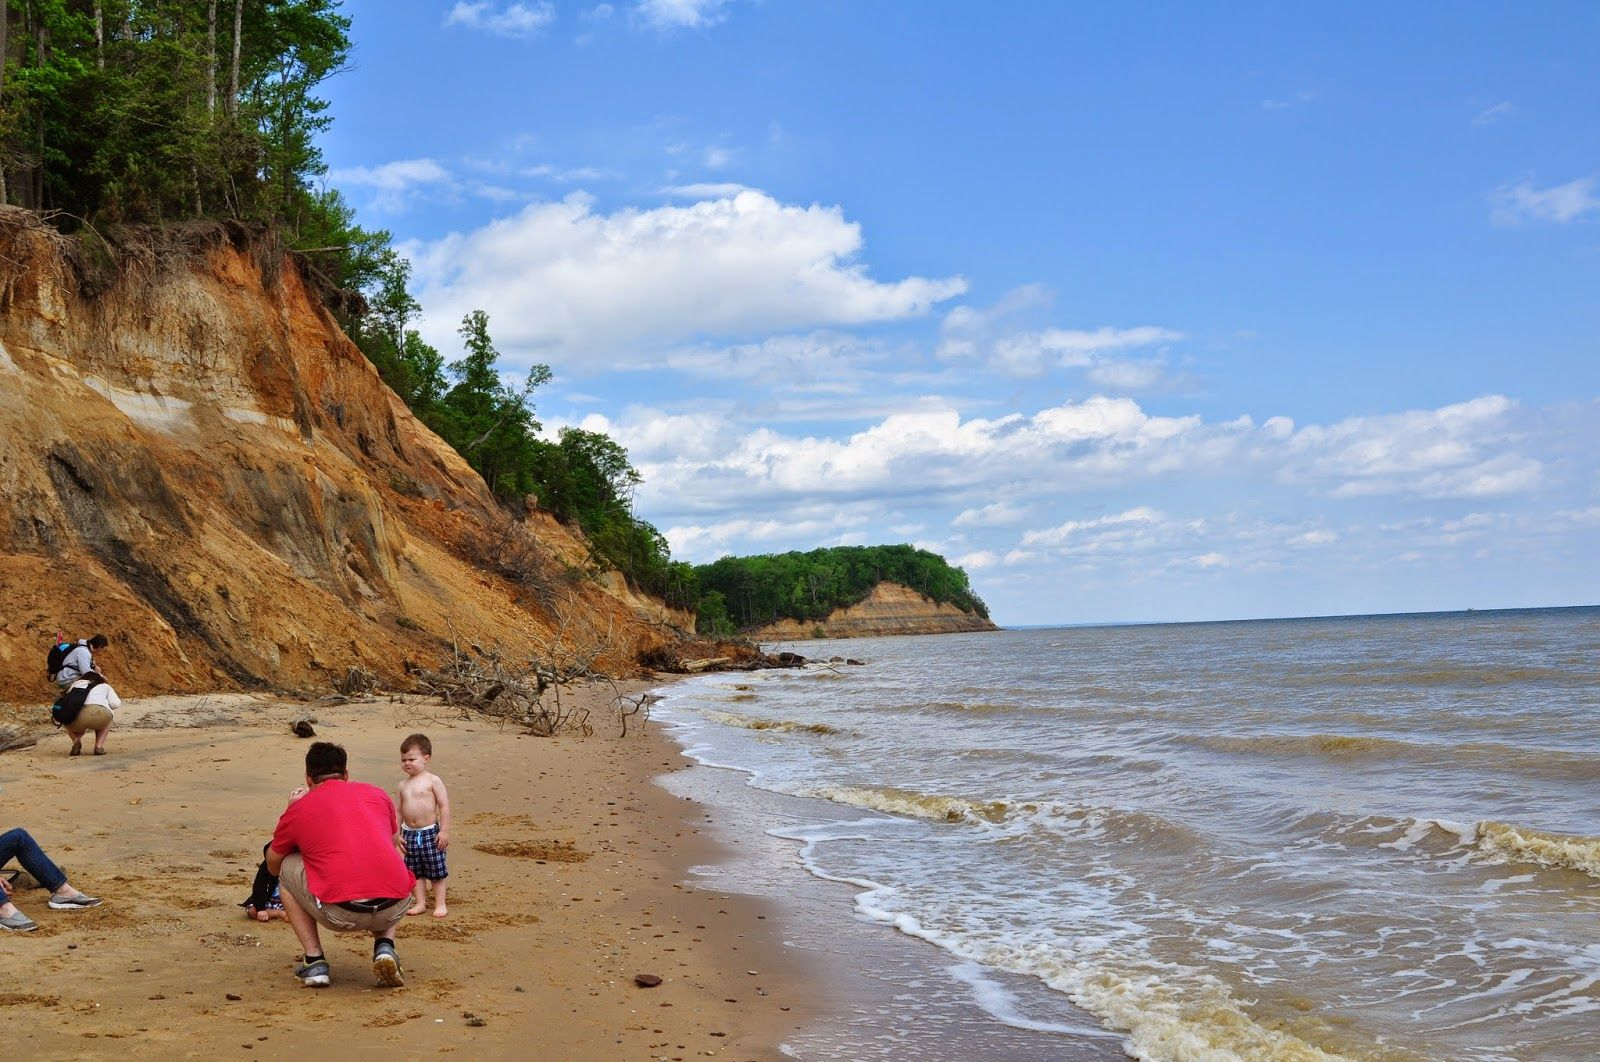 Beach Combing At Calvert Cliffs State Park With Images